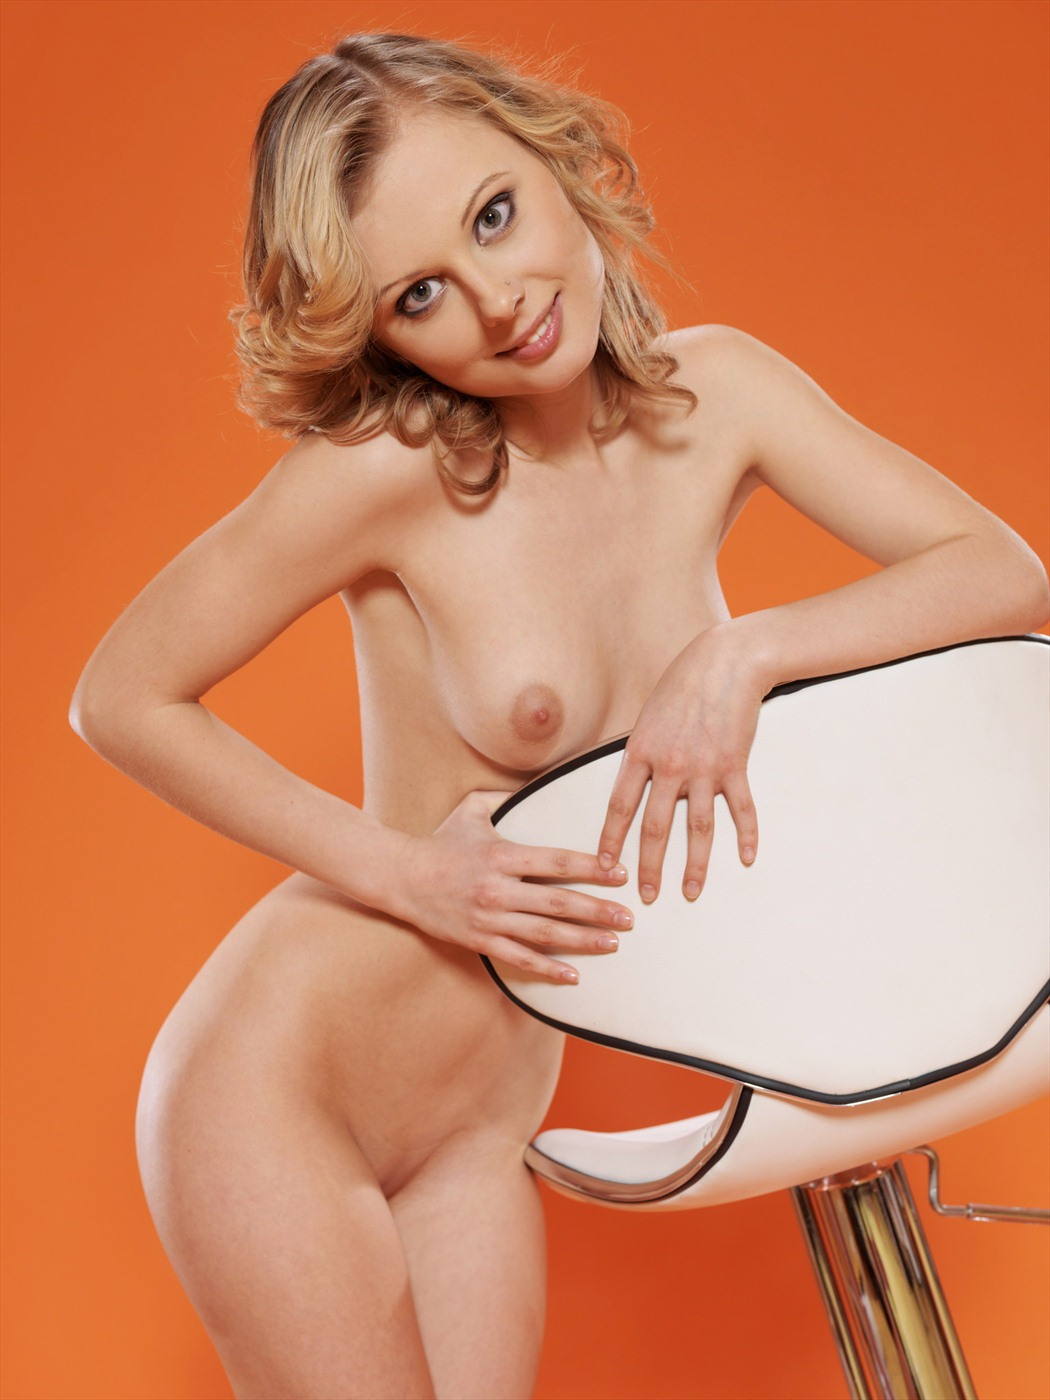 About such nude lili h met art ass something